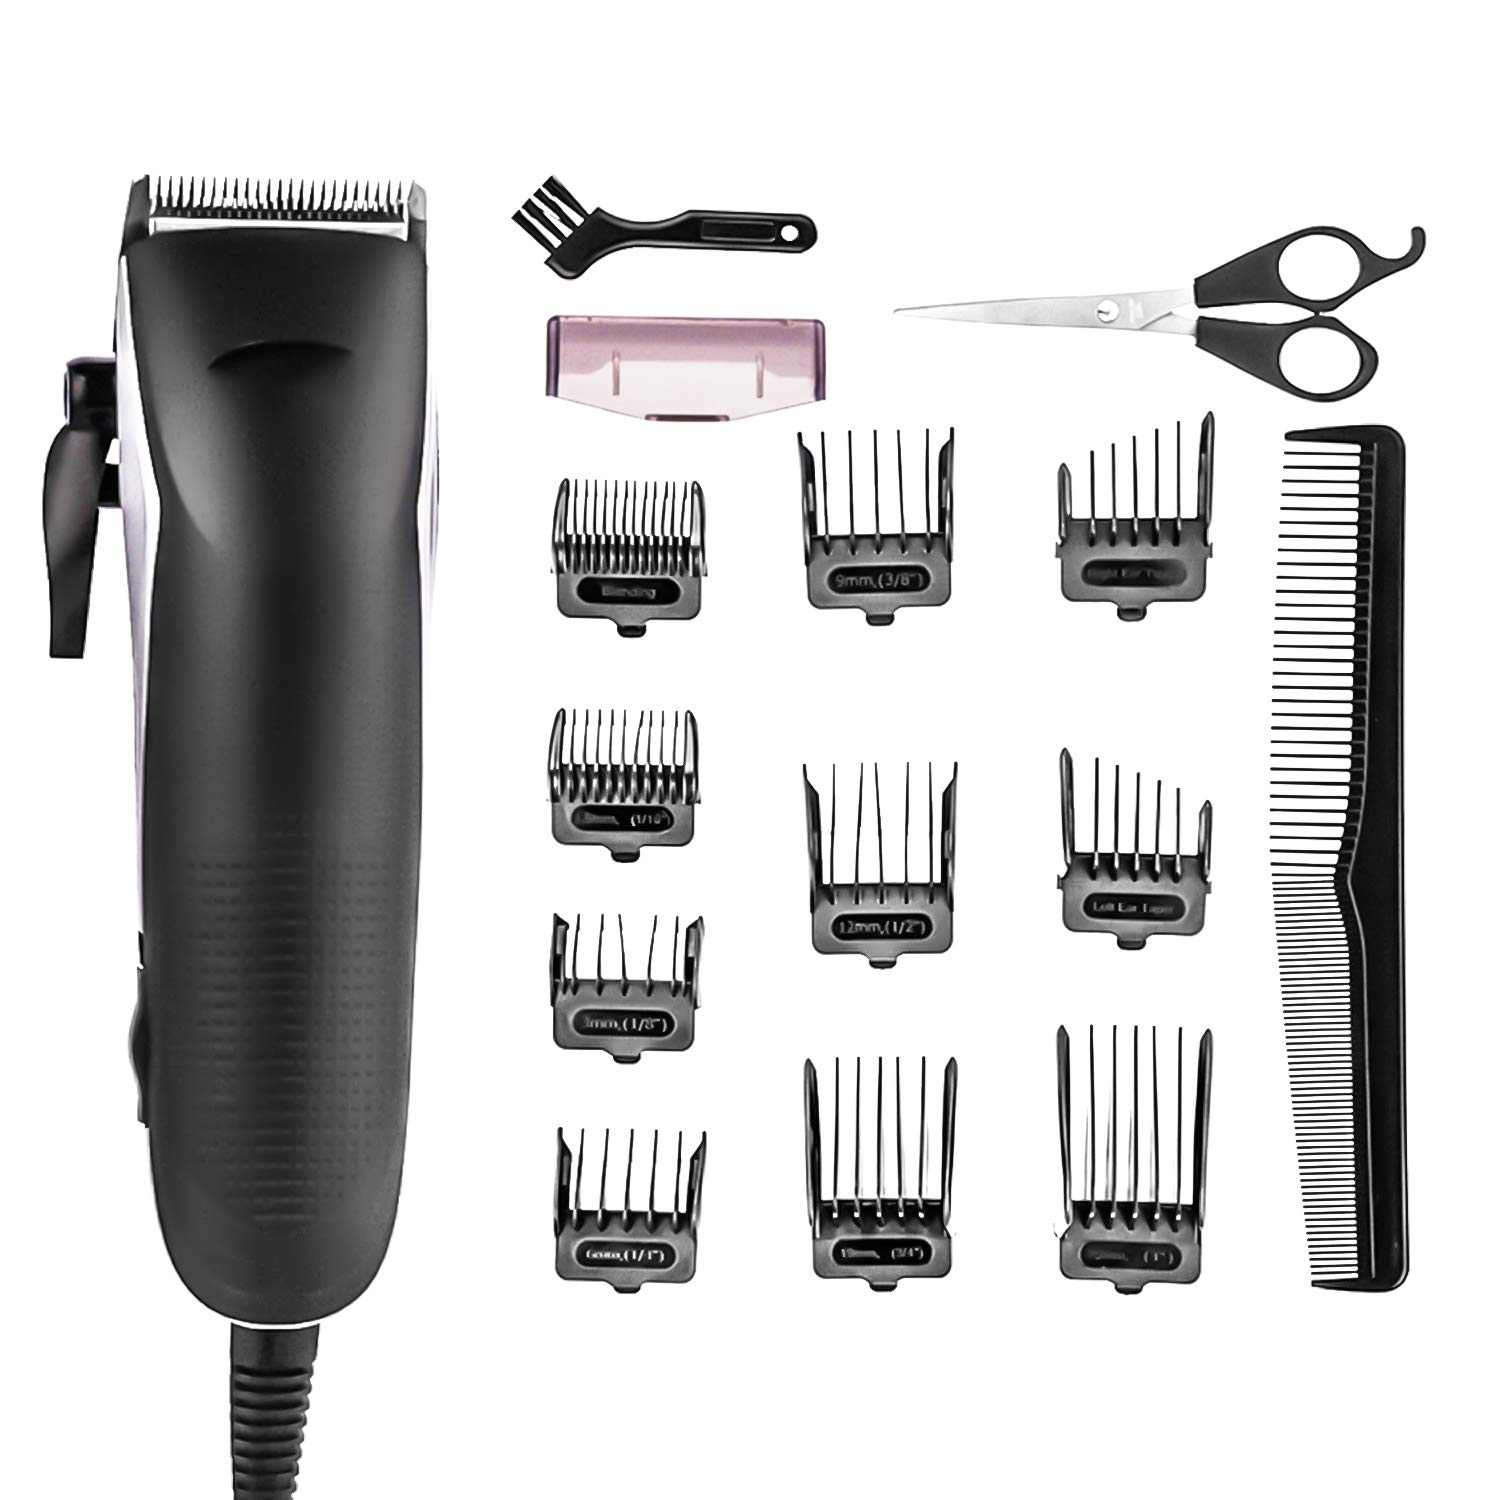 Xnuoyo Powerful Electric Hair Clippers and Beard Trimmer, All-In-One Manscaping Trimmer Electric Grooming Kit for Nose Ear Facial Hair Precision Trimmer